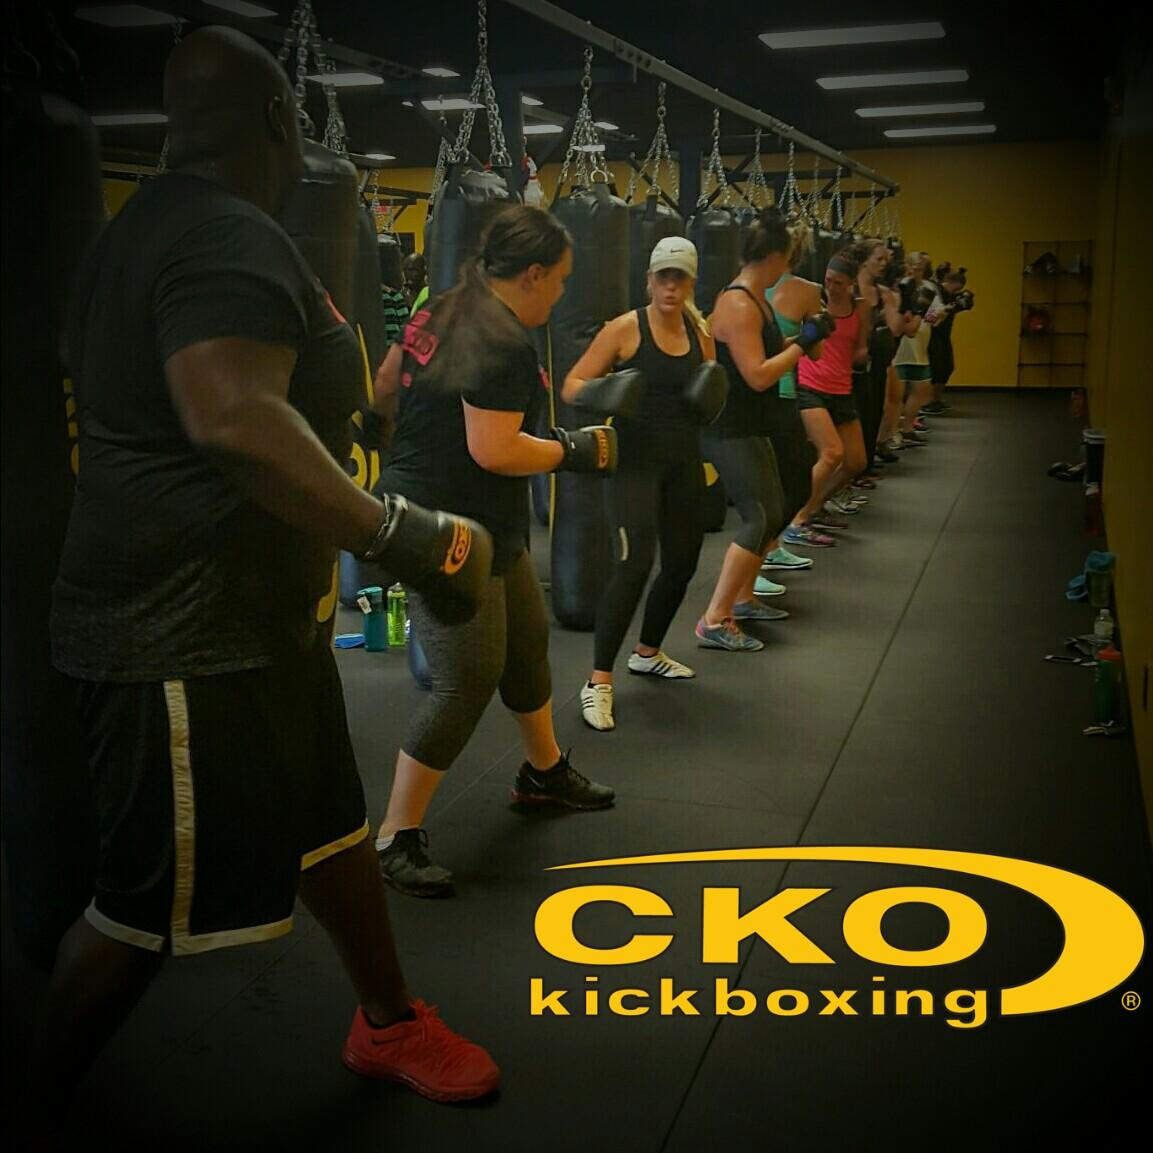 CKO Kickboxing Coupons near me in Lincoln | 8coupons